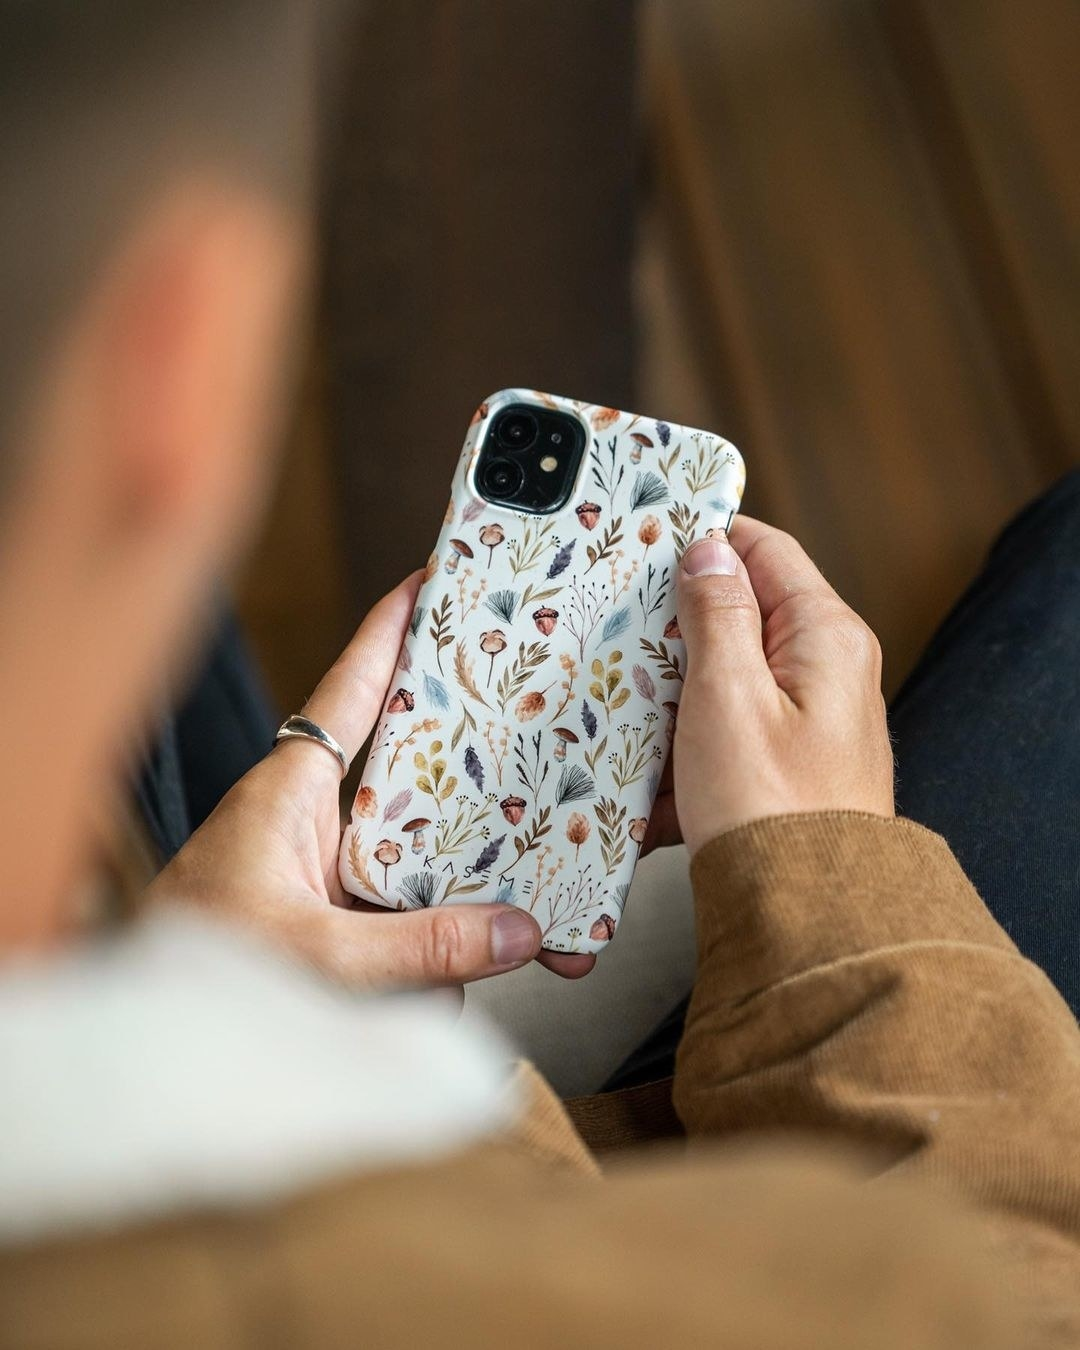 A person holding up their phone with a case on it